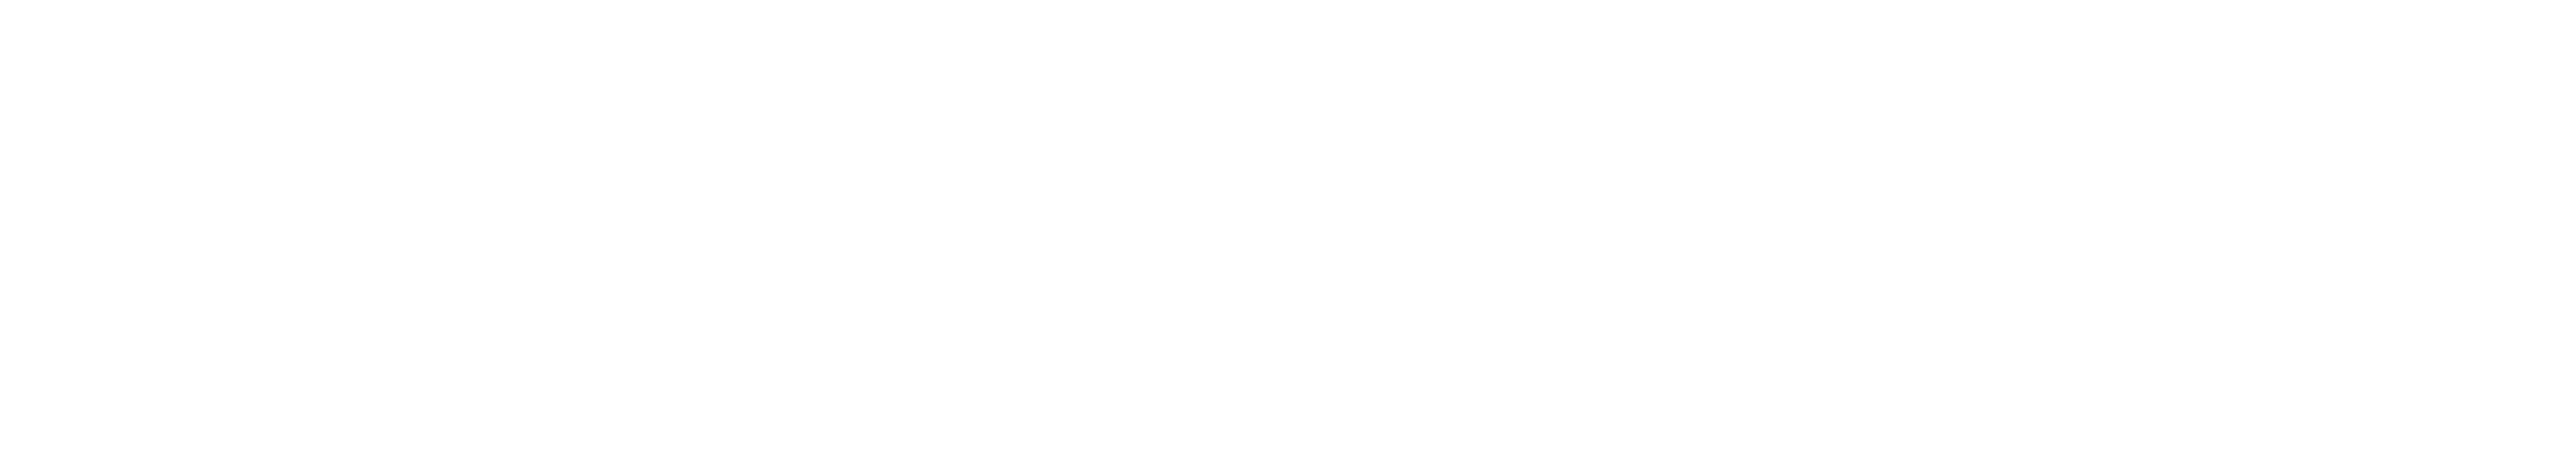 ComeHome - architects